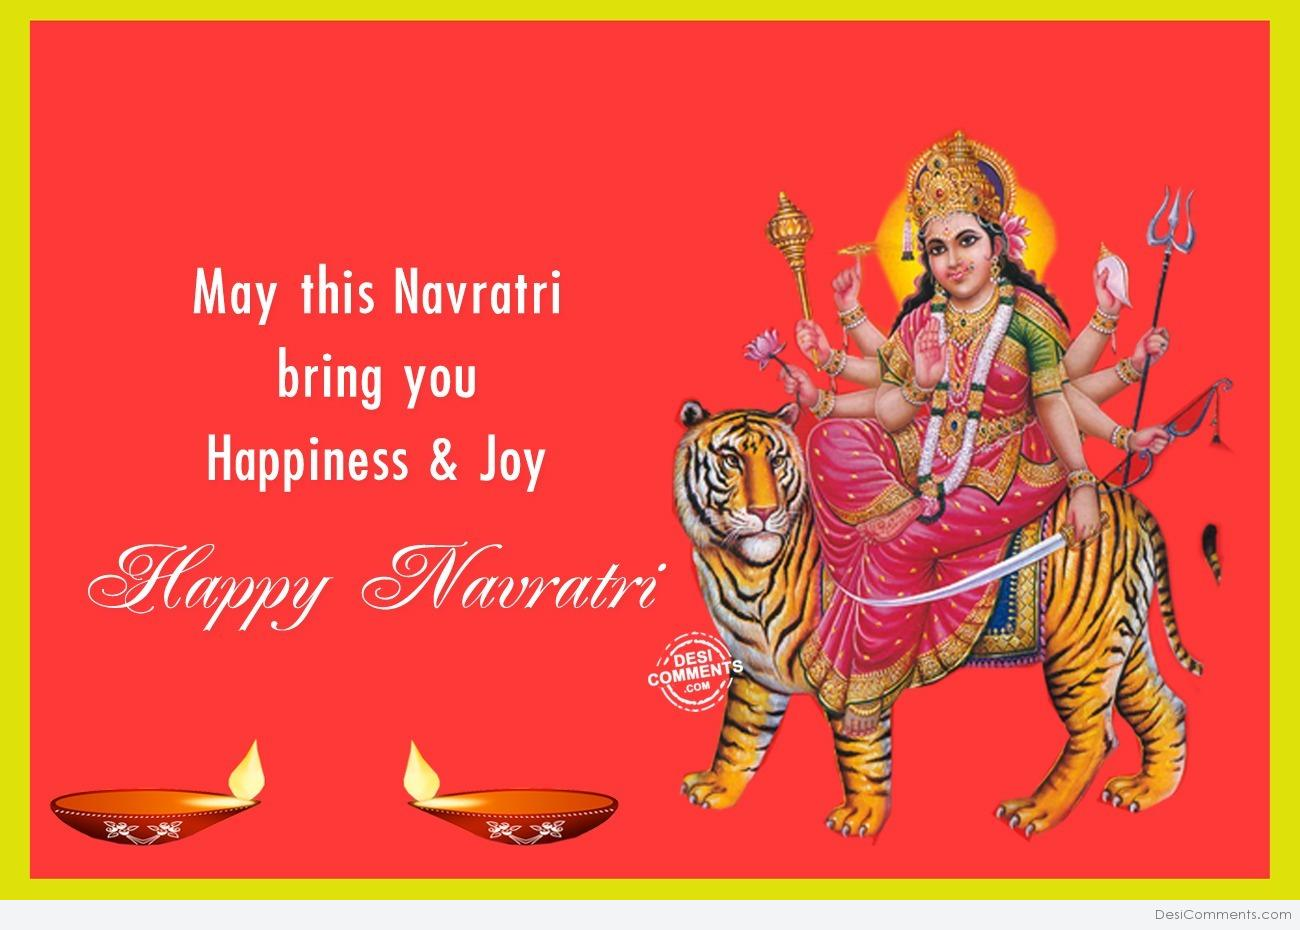 Navratri pictures images graphics page 7 may this navratri brings happiness kristyandbryce Choice Image